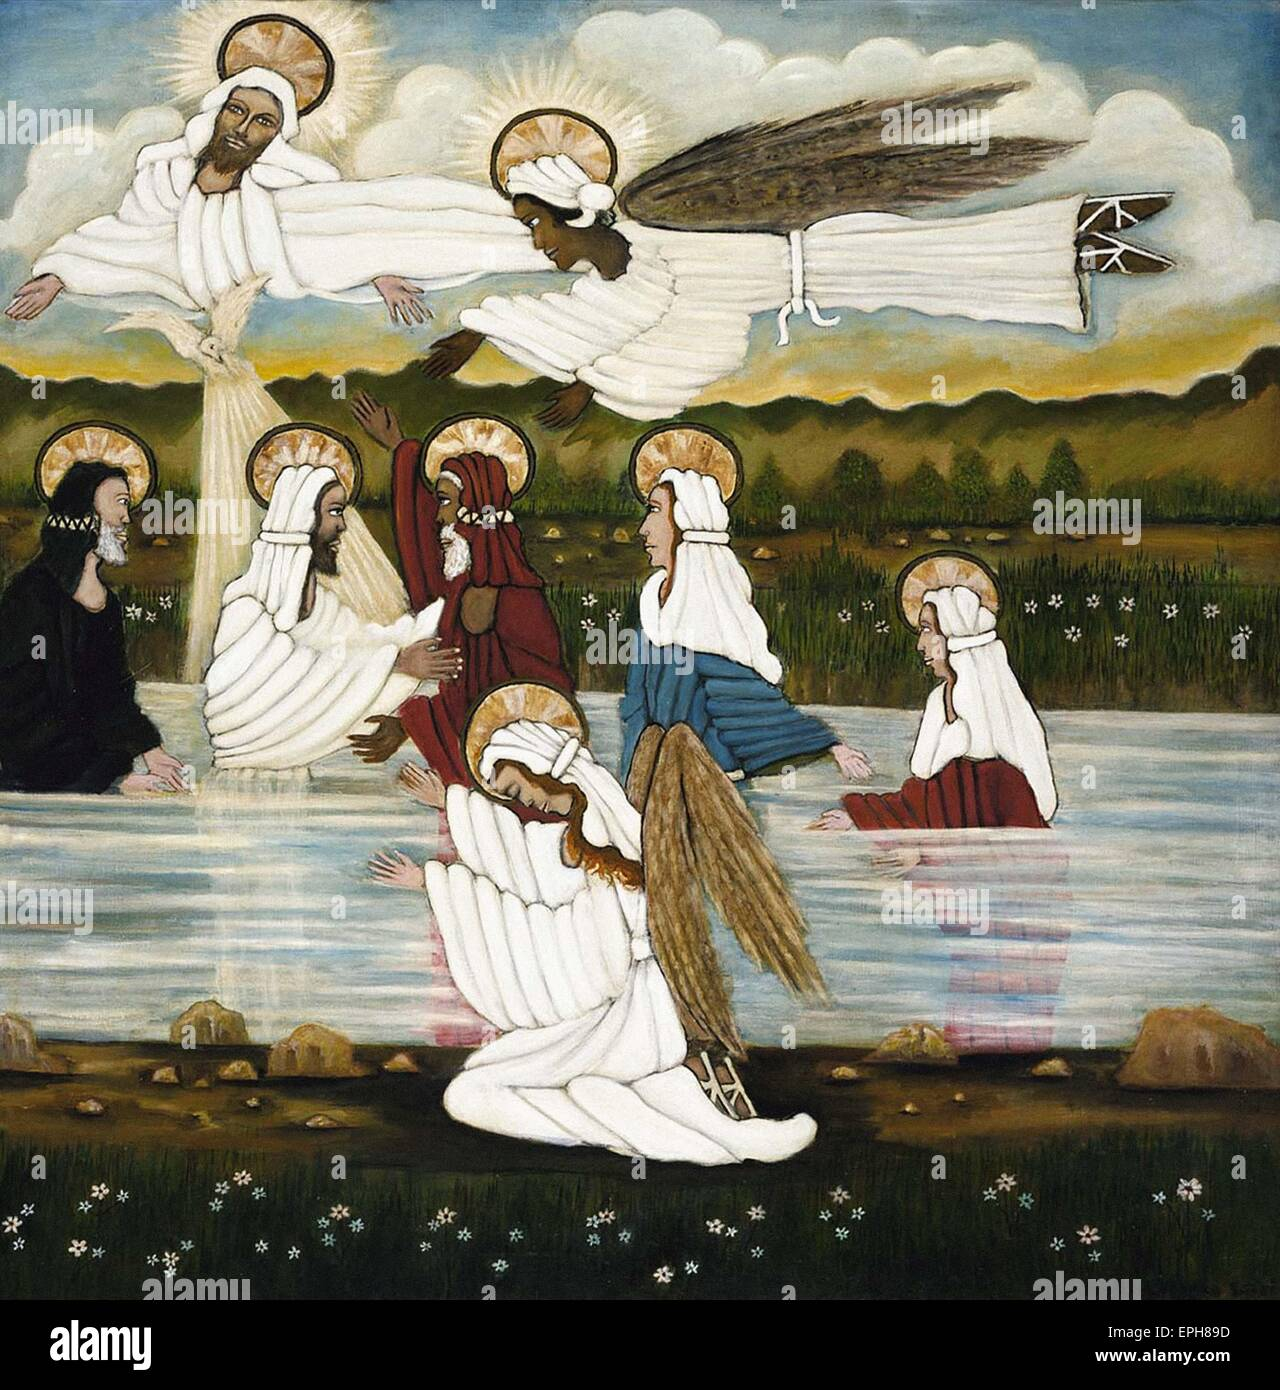 Lorenzo Scott  Baptism of Jesus - Stock Image